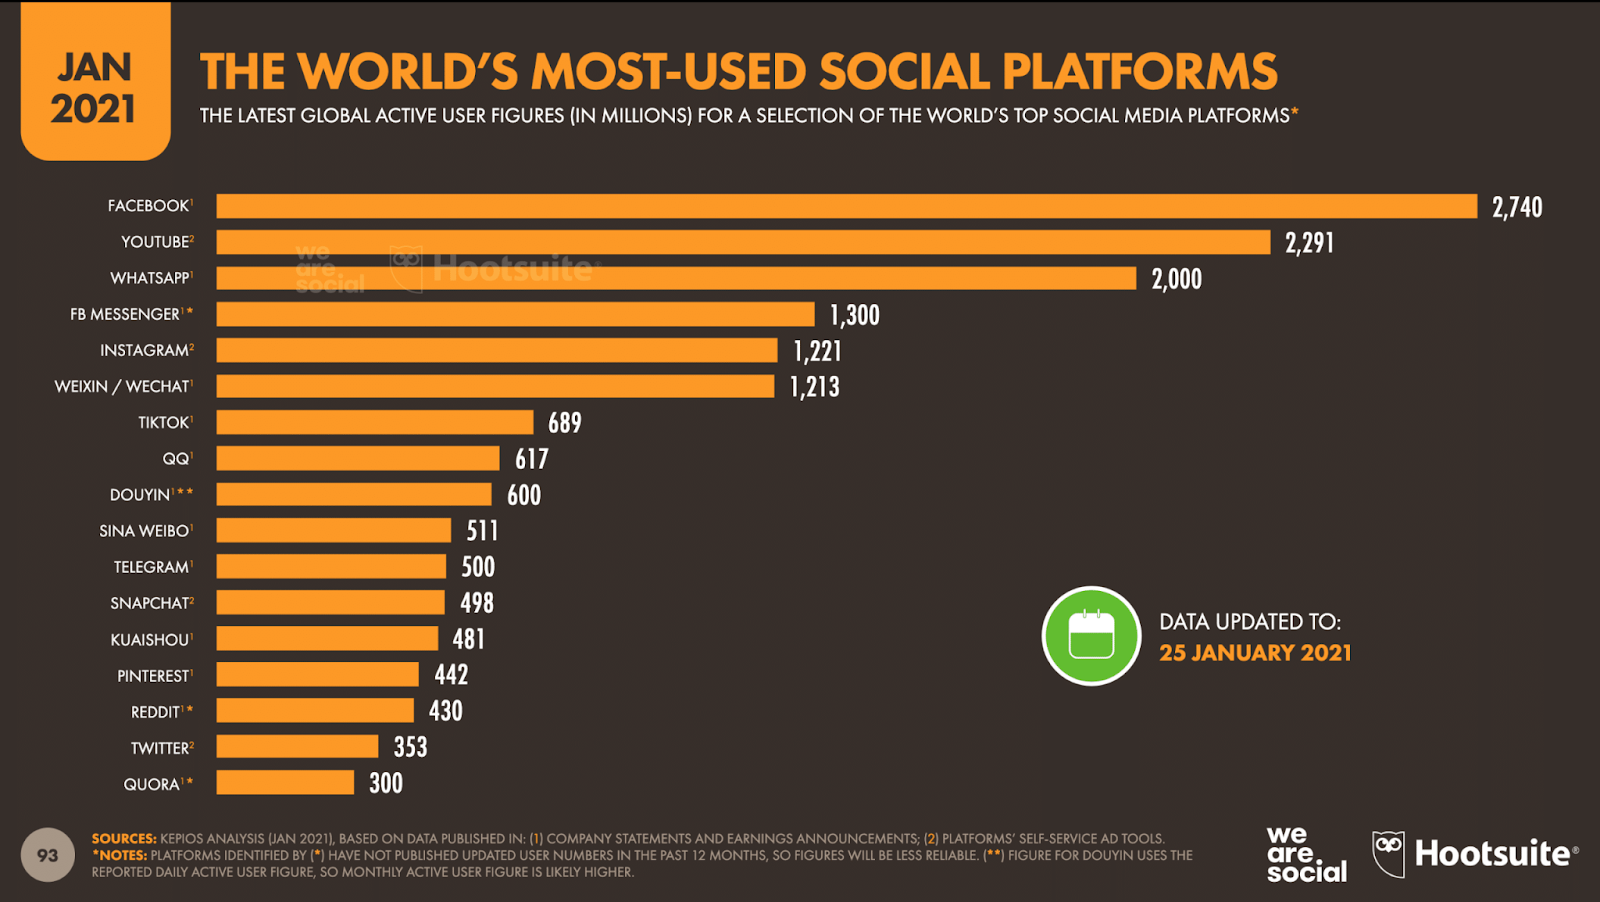 The world's most-used social platforms by Hootsuite as of January 25, 2021.